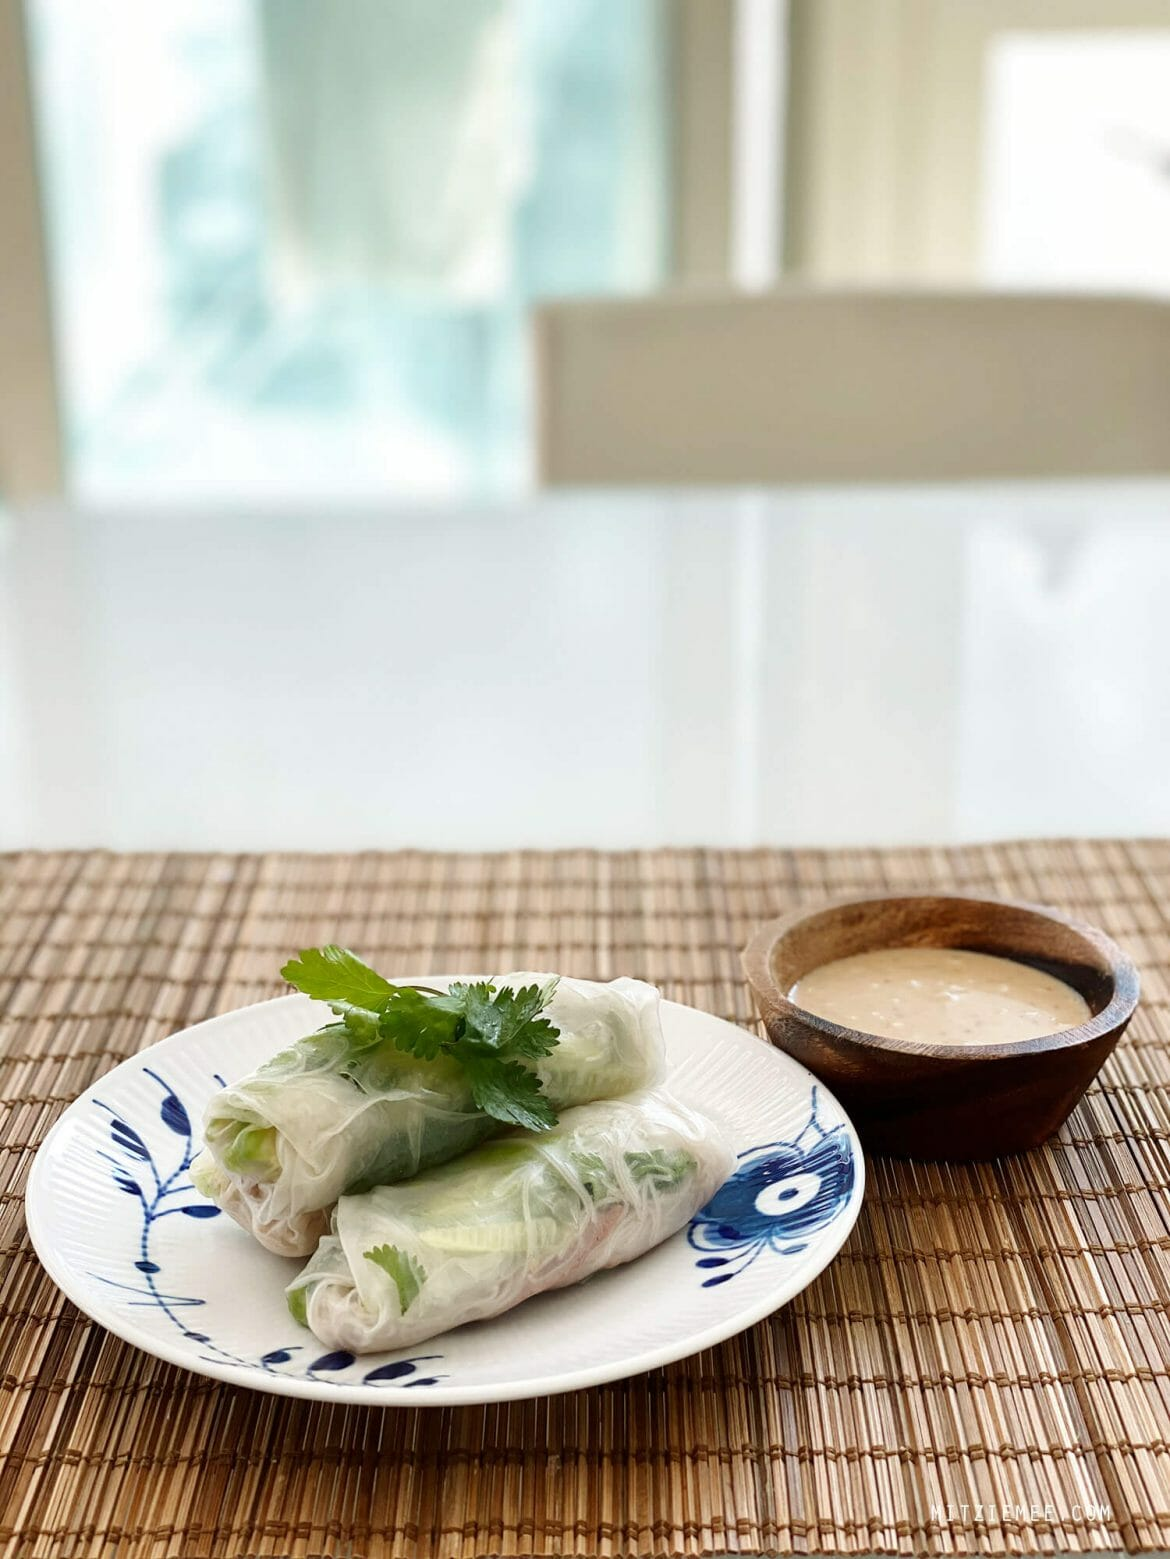 Rice paper rolls with roast duck and avocado